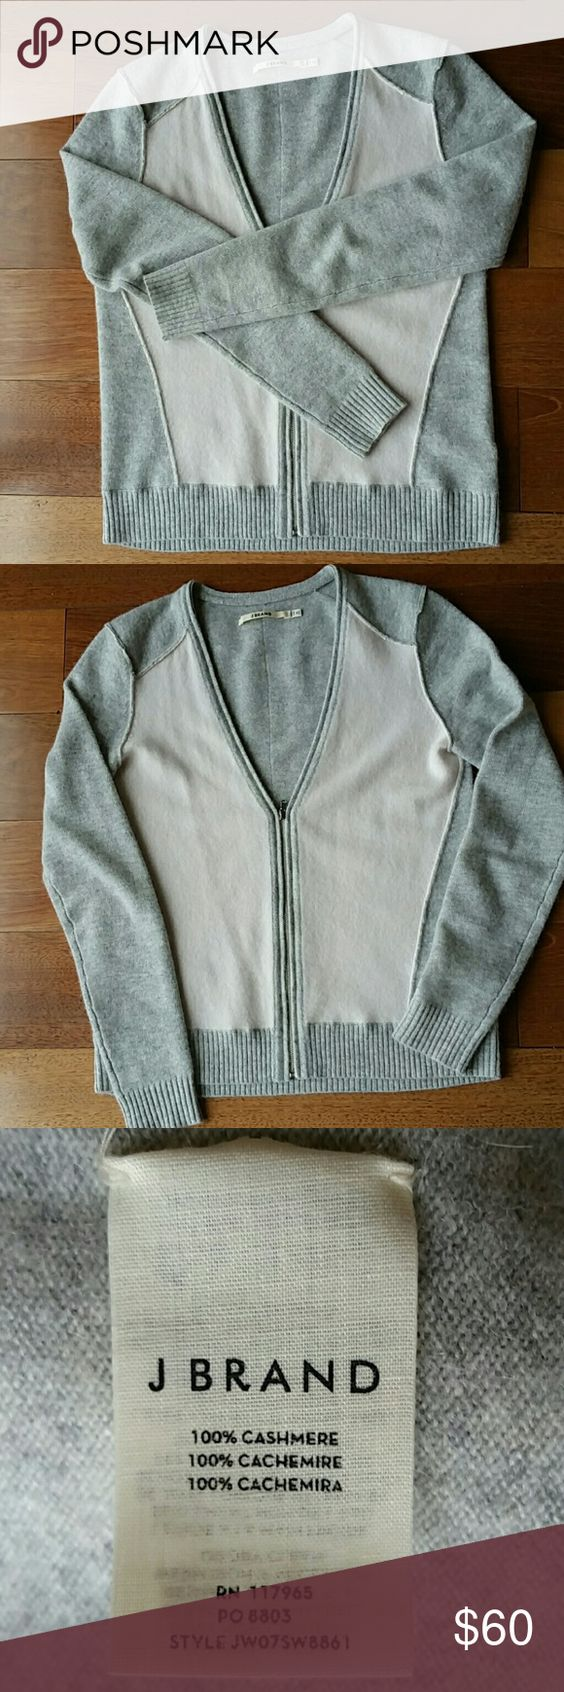 """J Brand Ready to Wear Cashmere Cardigan Supper soft, shrunken sweater, length is 22.5 """" in back. j brand  Sweaters Cardigans"""